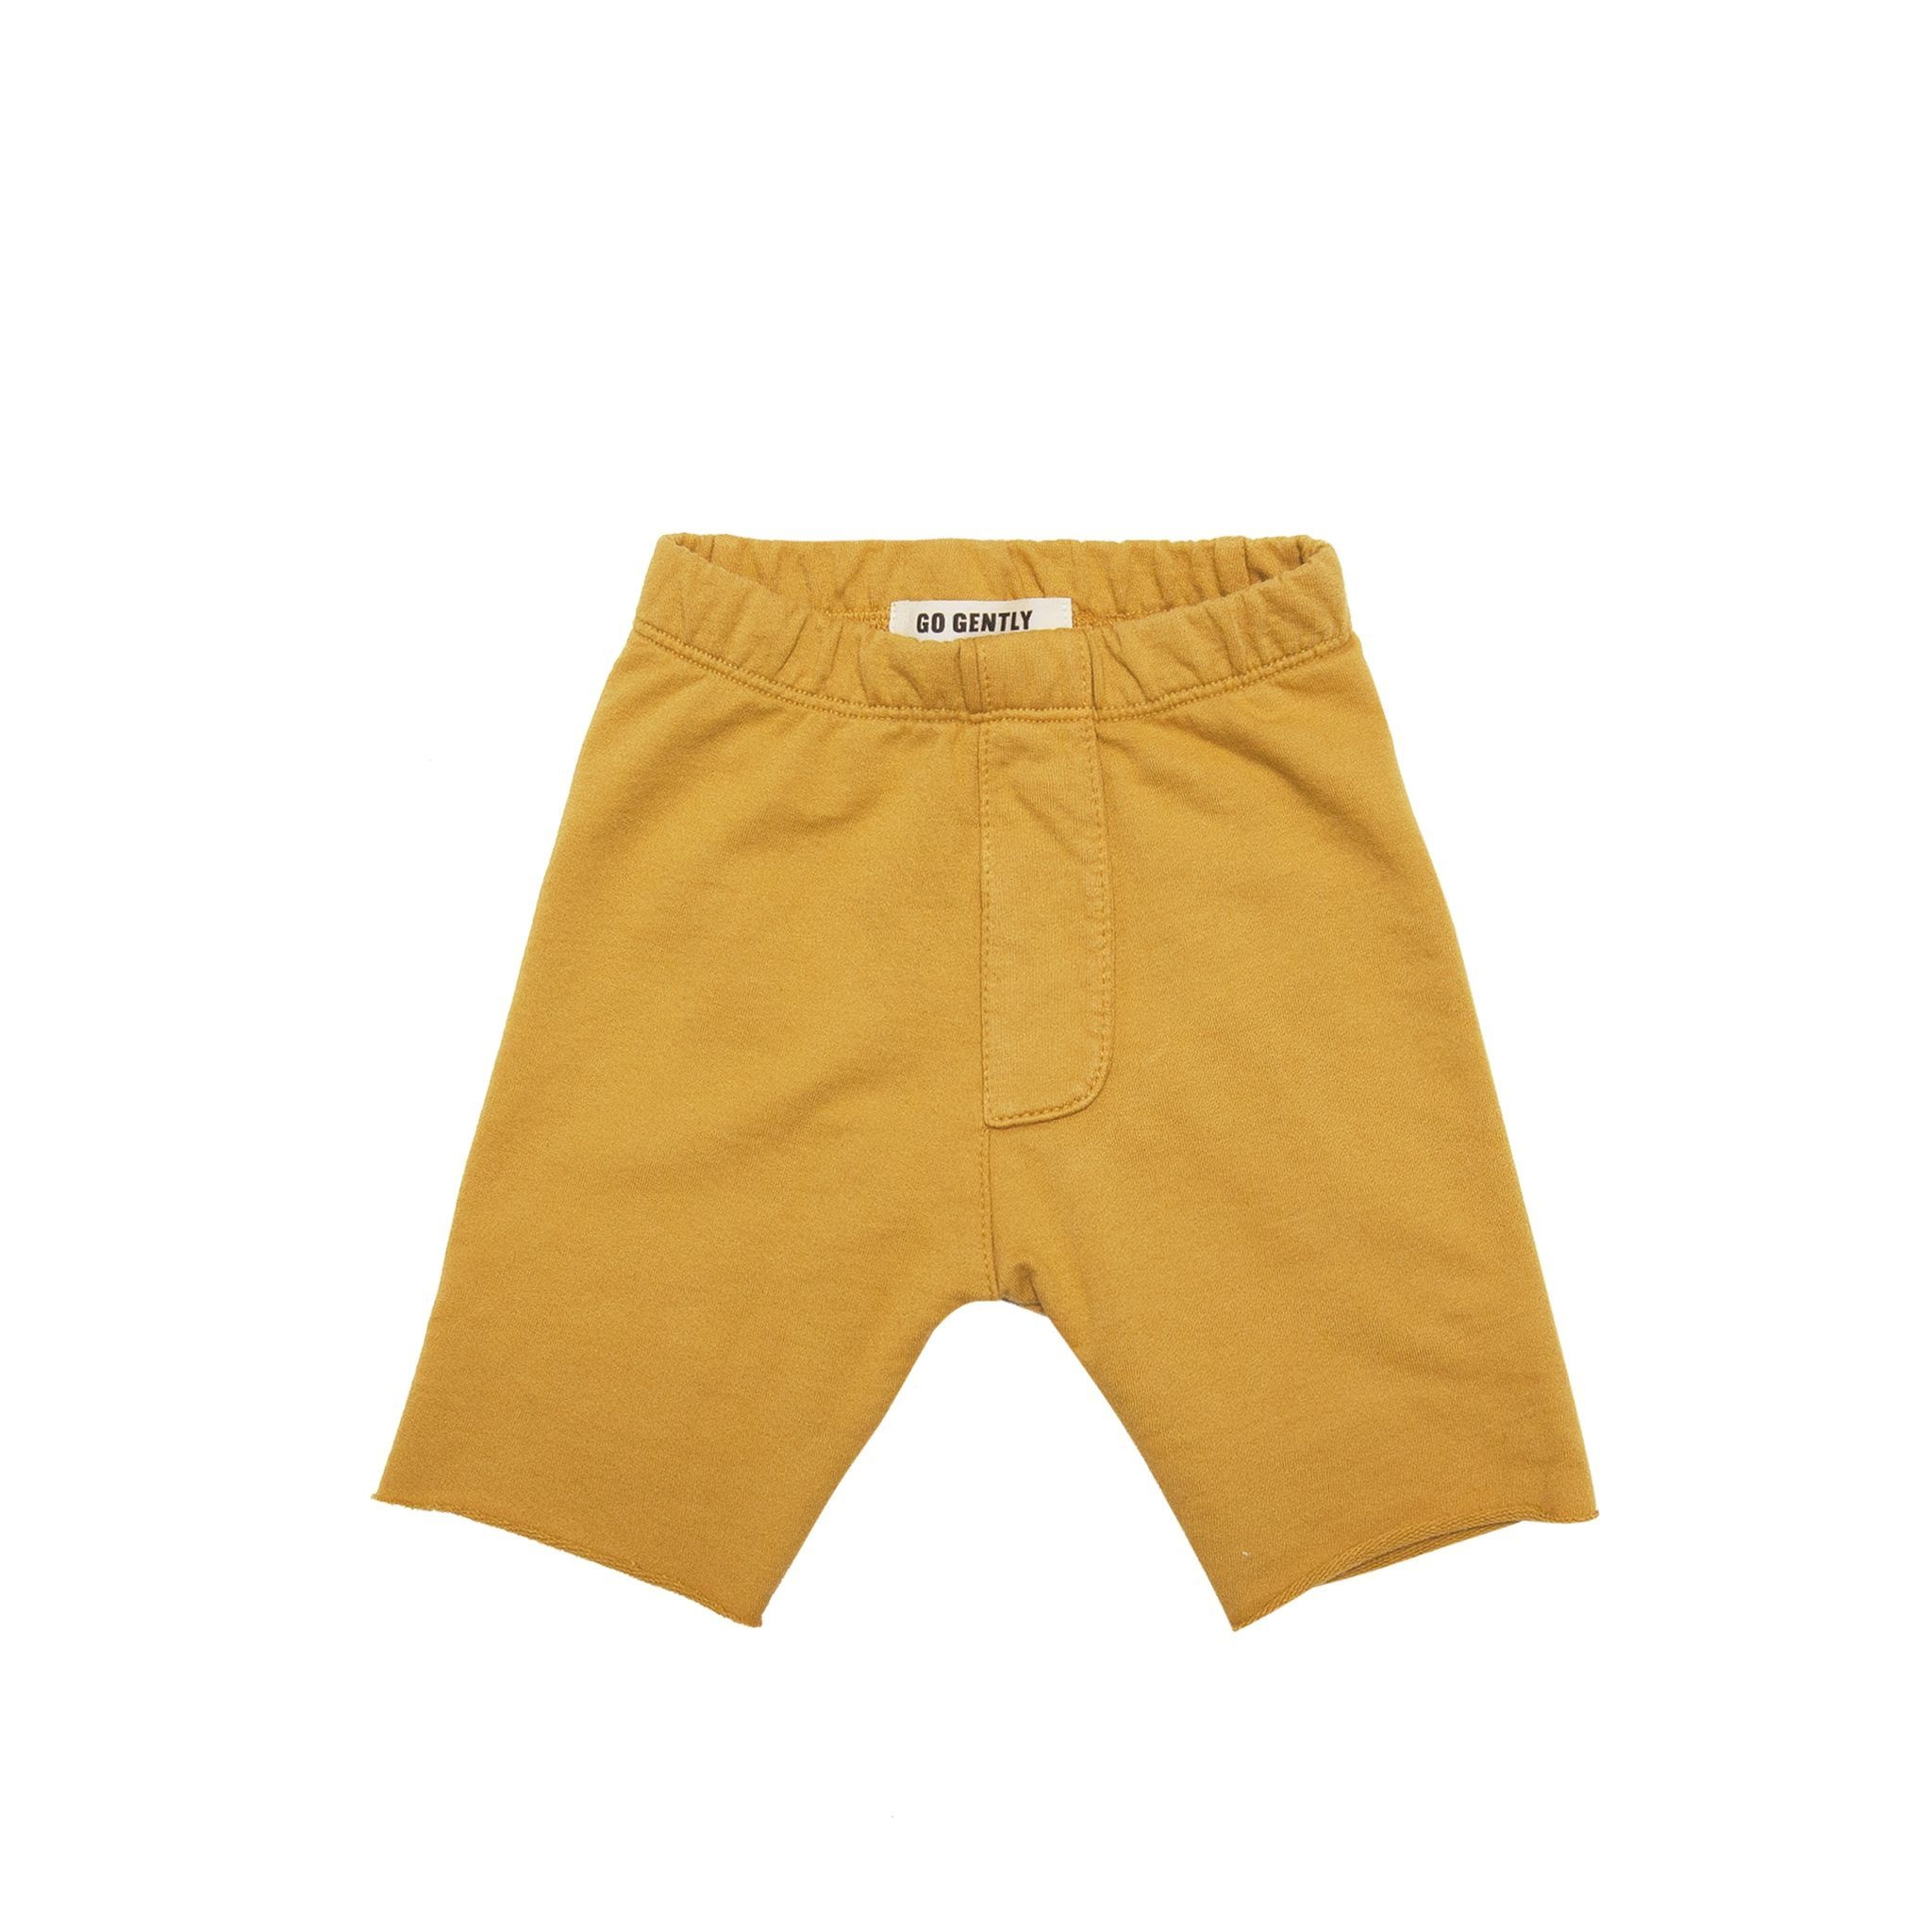 GOGENTLYNATION Trouser Short